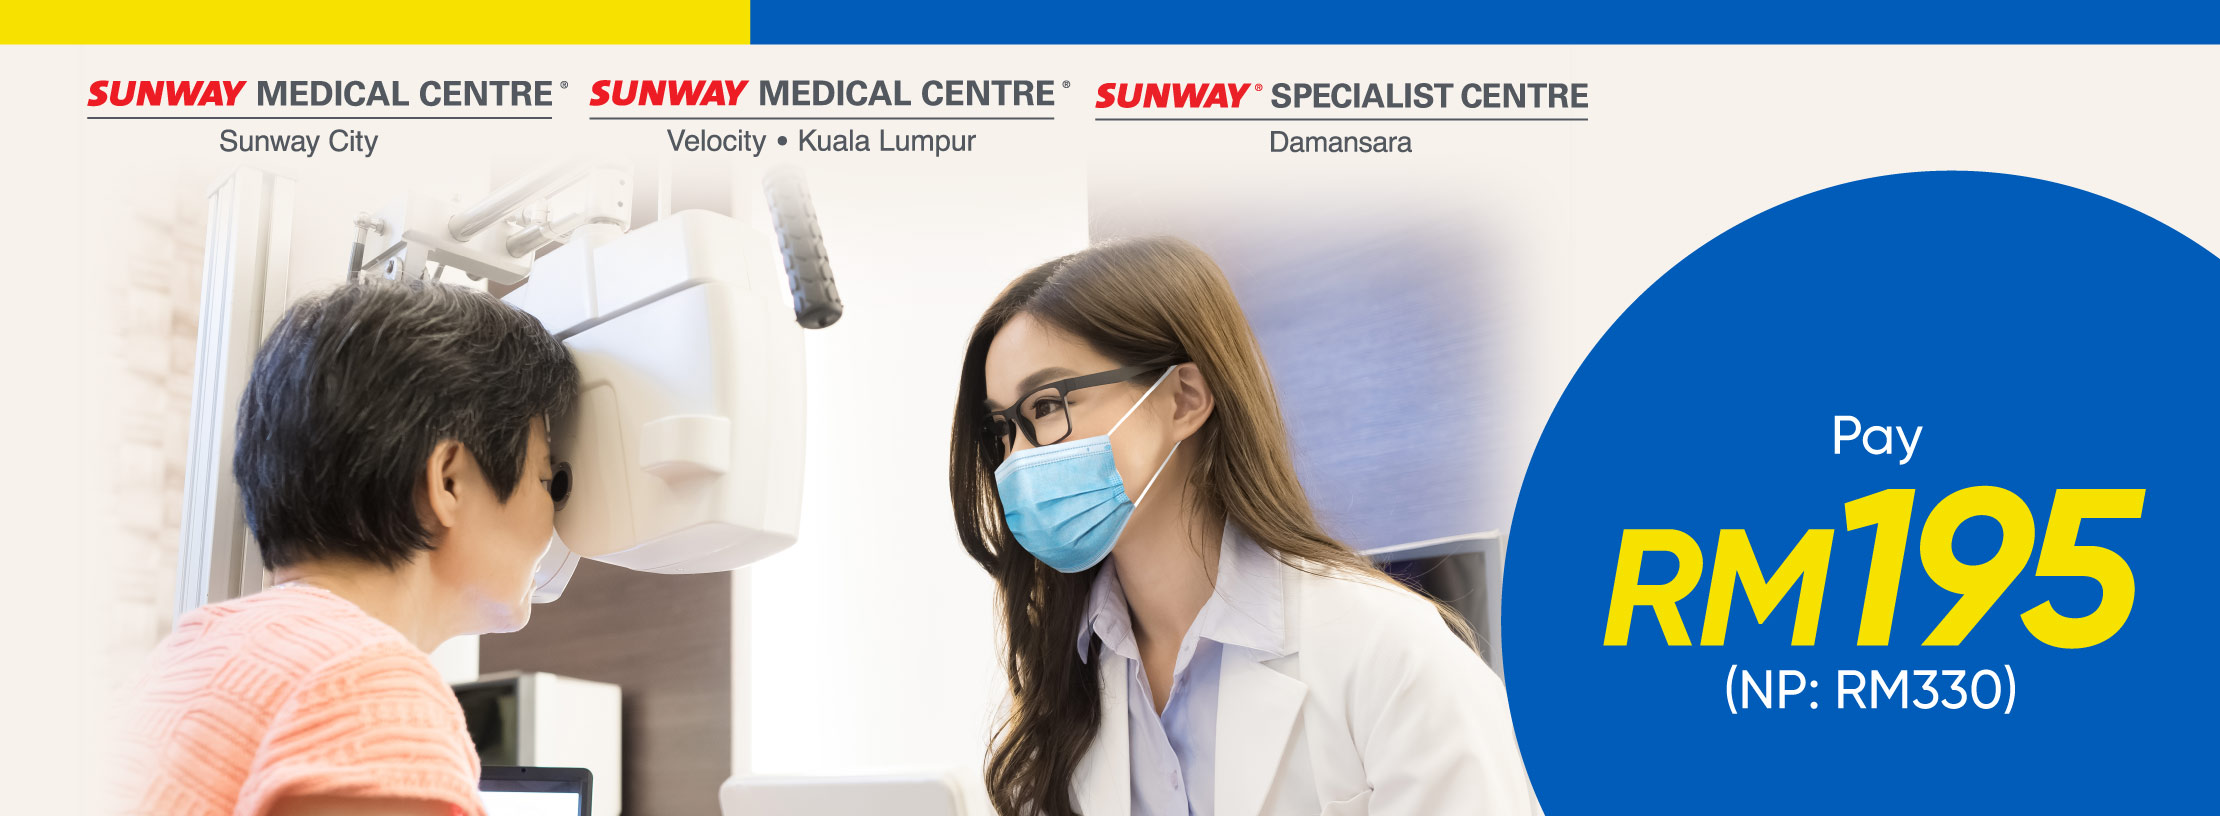 Sunway Healthcare Group August'21 Promotion